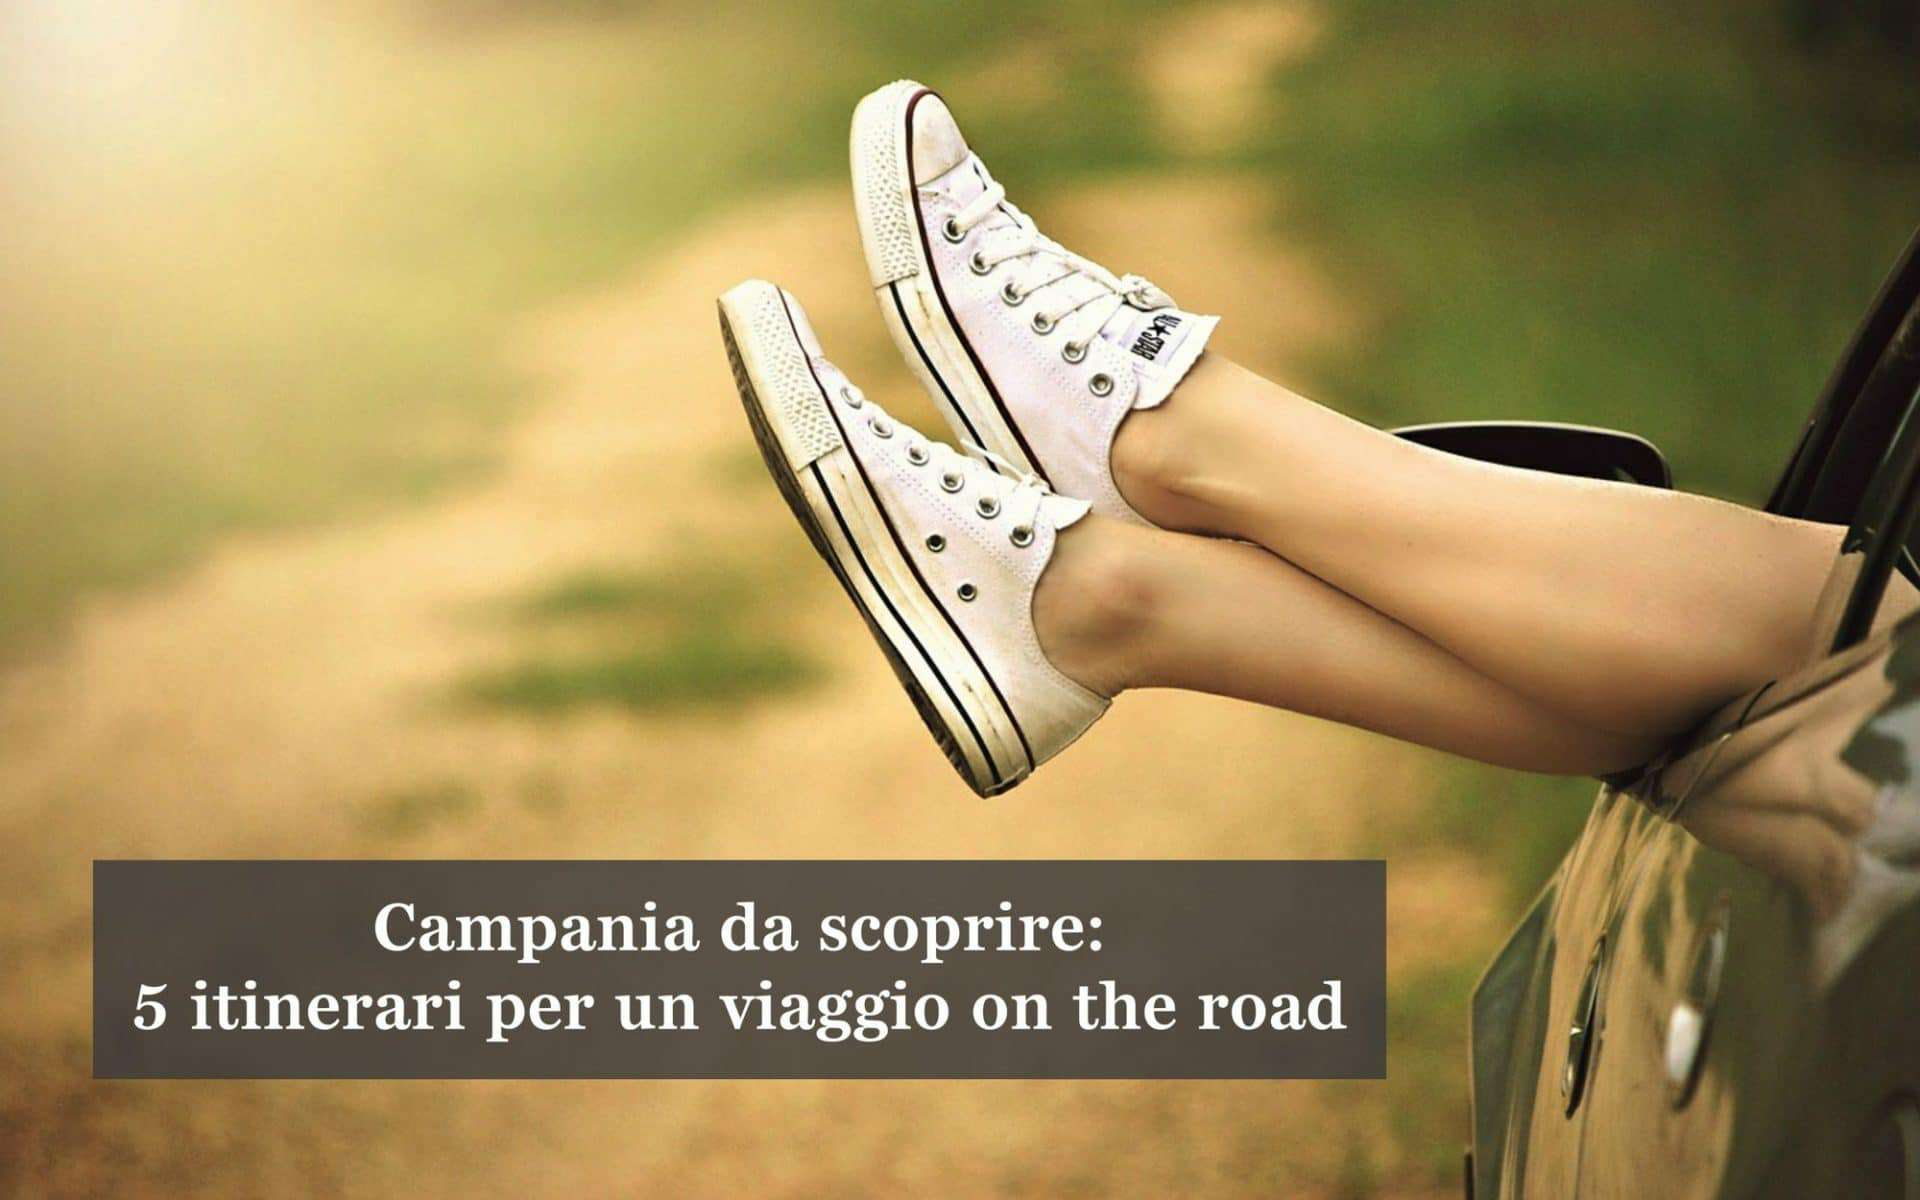 Campania da scoprire: 5 itinerari per un viaggio on the road